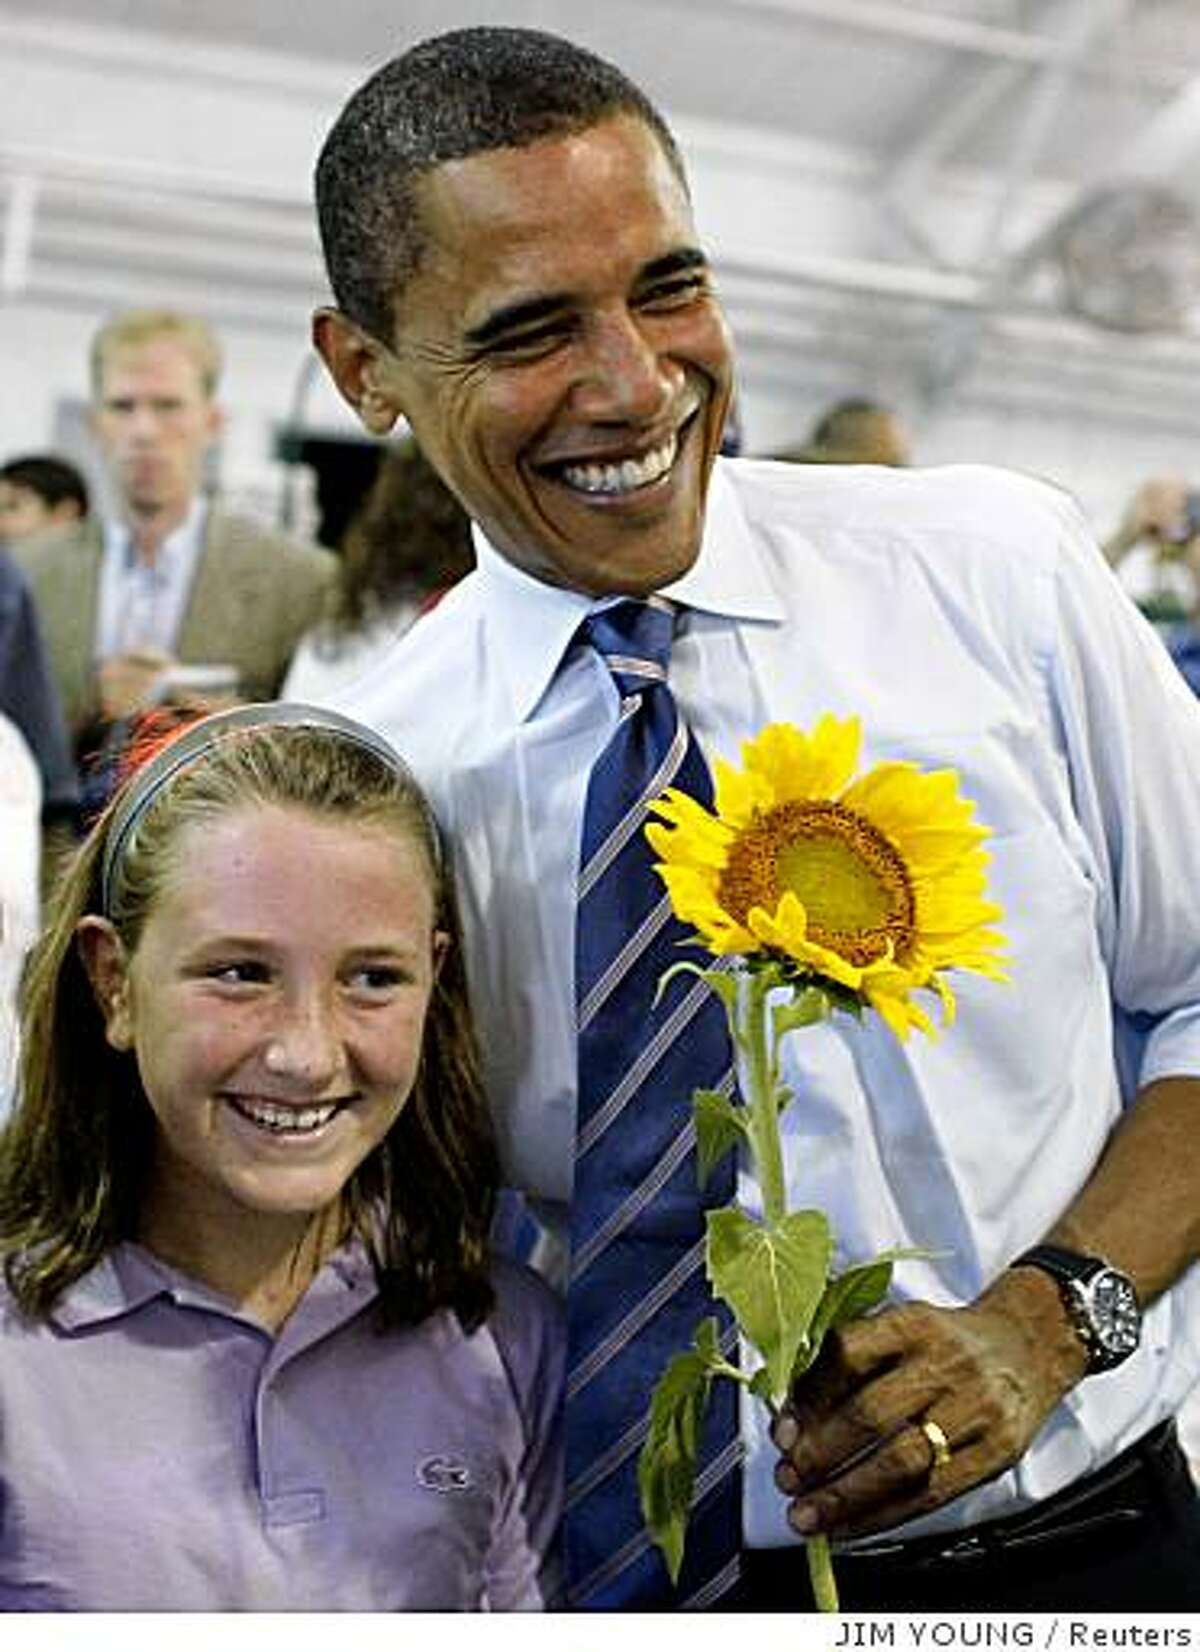 US Democratic presidential candidate Senator Barack Obama (D-IL) holds a sunflower that was given to him during a campaign stop at the Greensboro Farmers Curb Market in Greensboro, North Carolina, August 20, 2008. REUTERS/Jim Young (UNITED STATES) US PRESIDENTIAL ELECTION CAMPAIGN 2008 (USA)